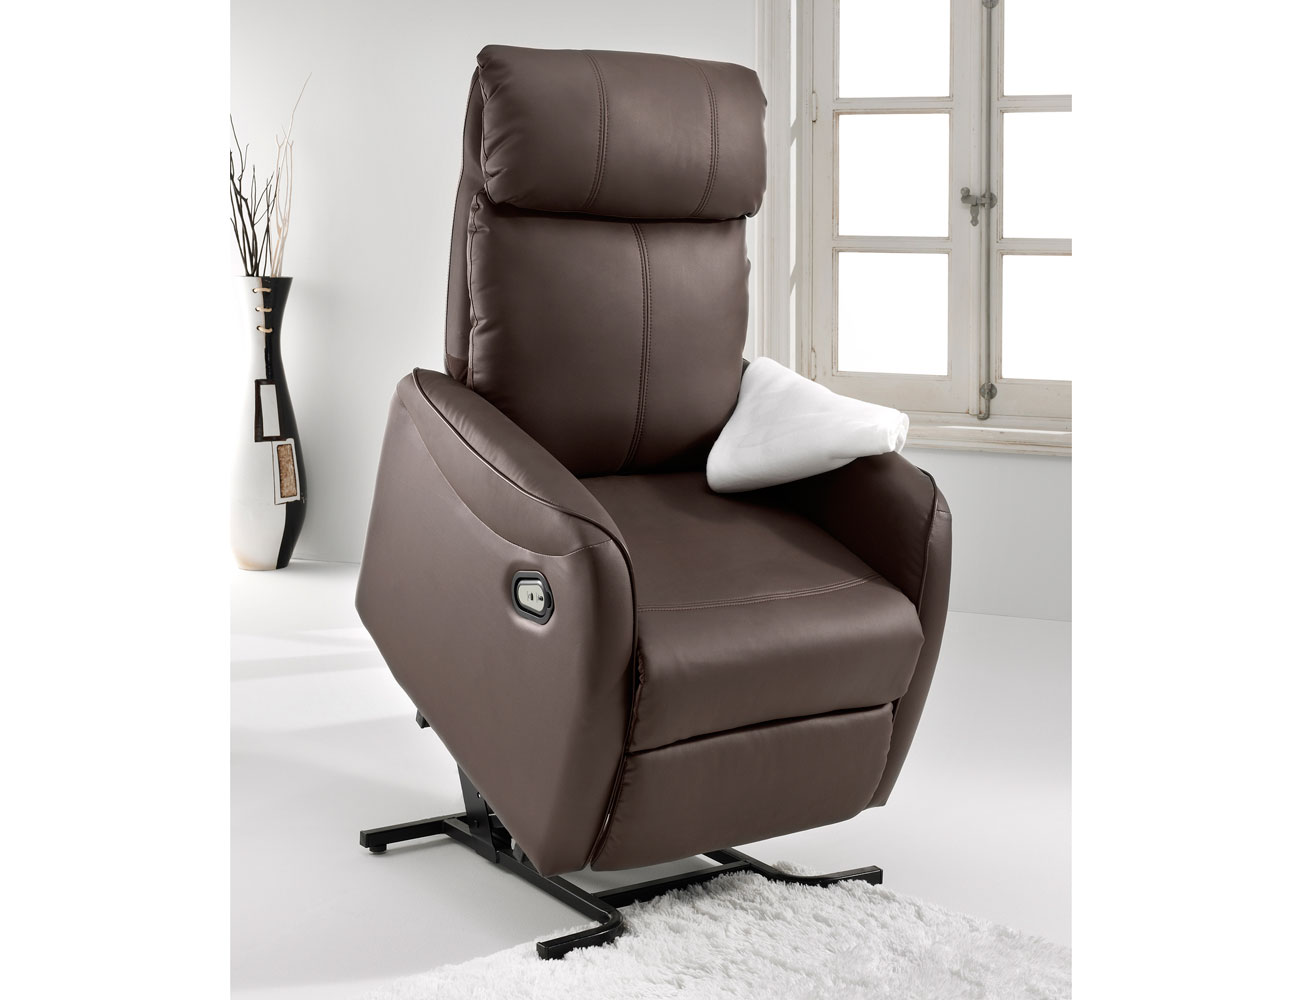 Sillon relax levanta personas power lift simil piel choco 3